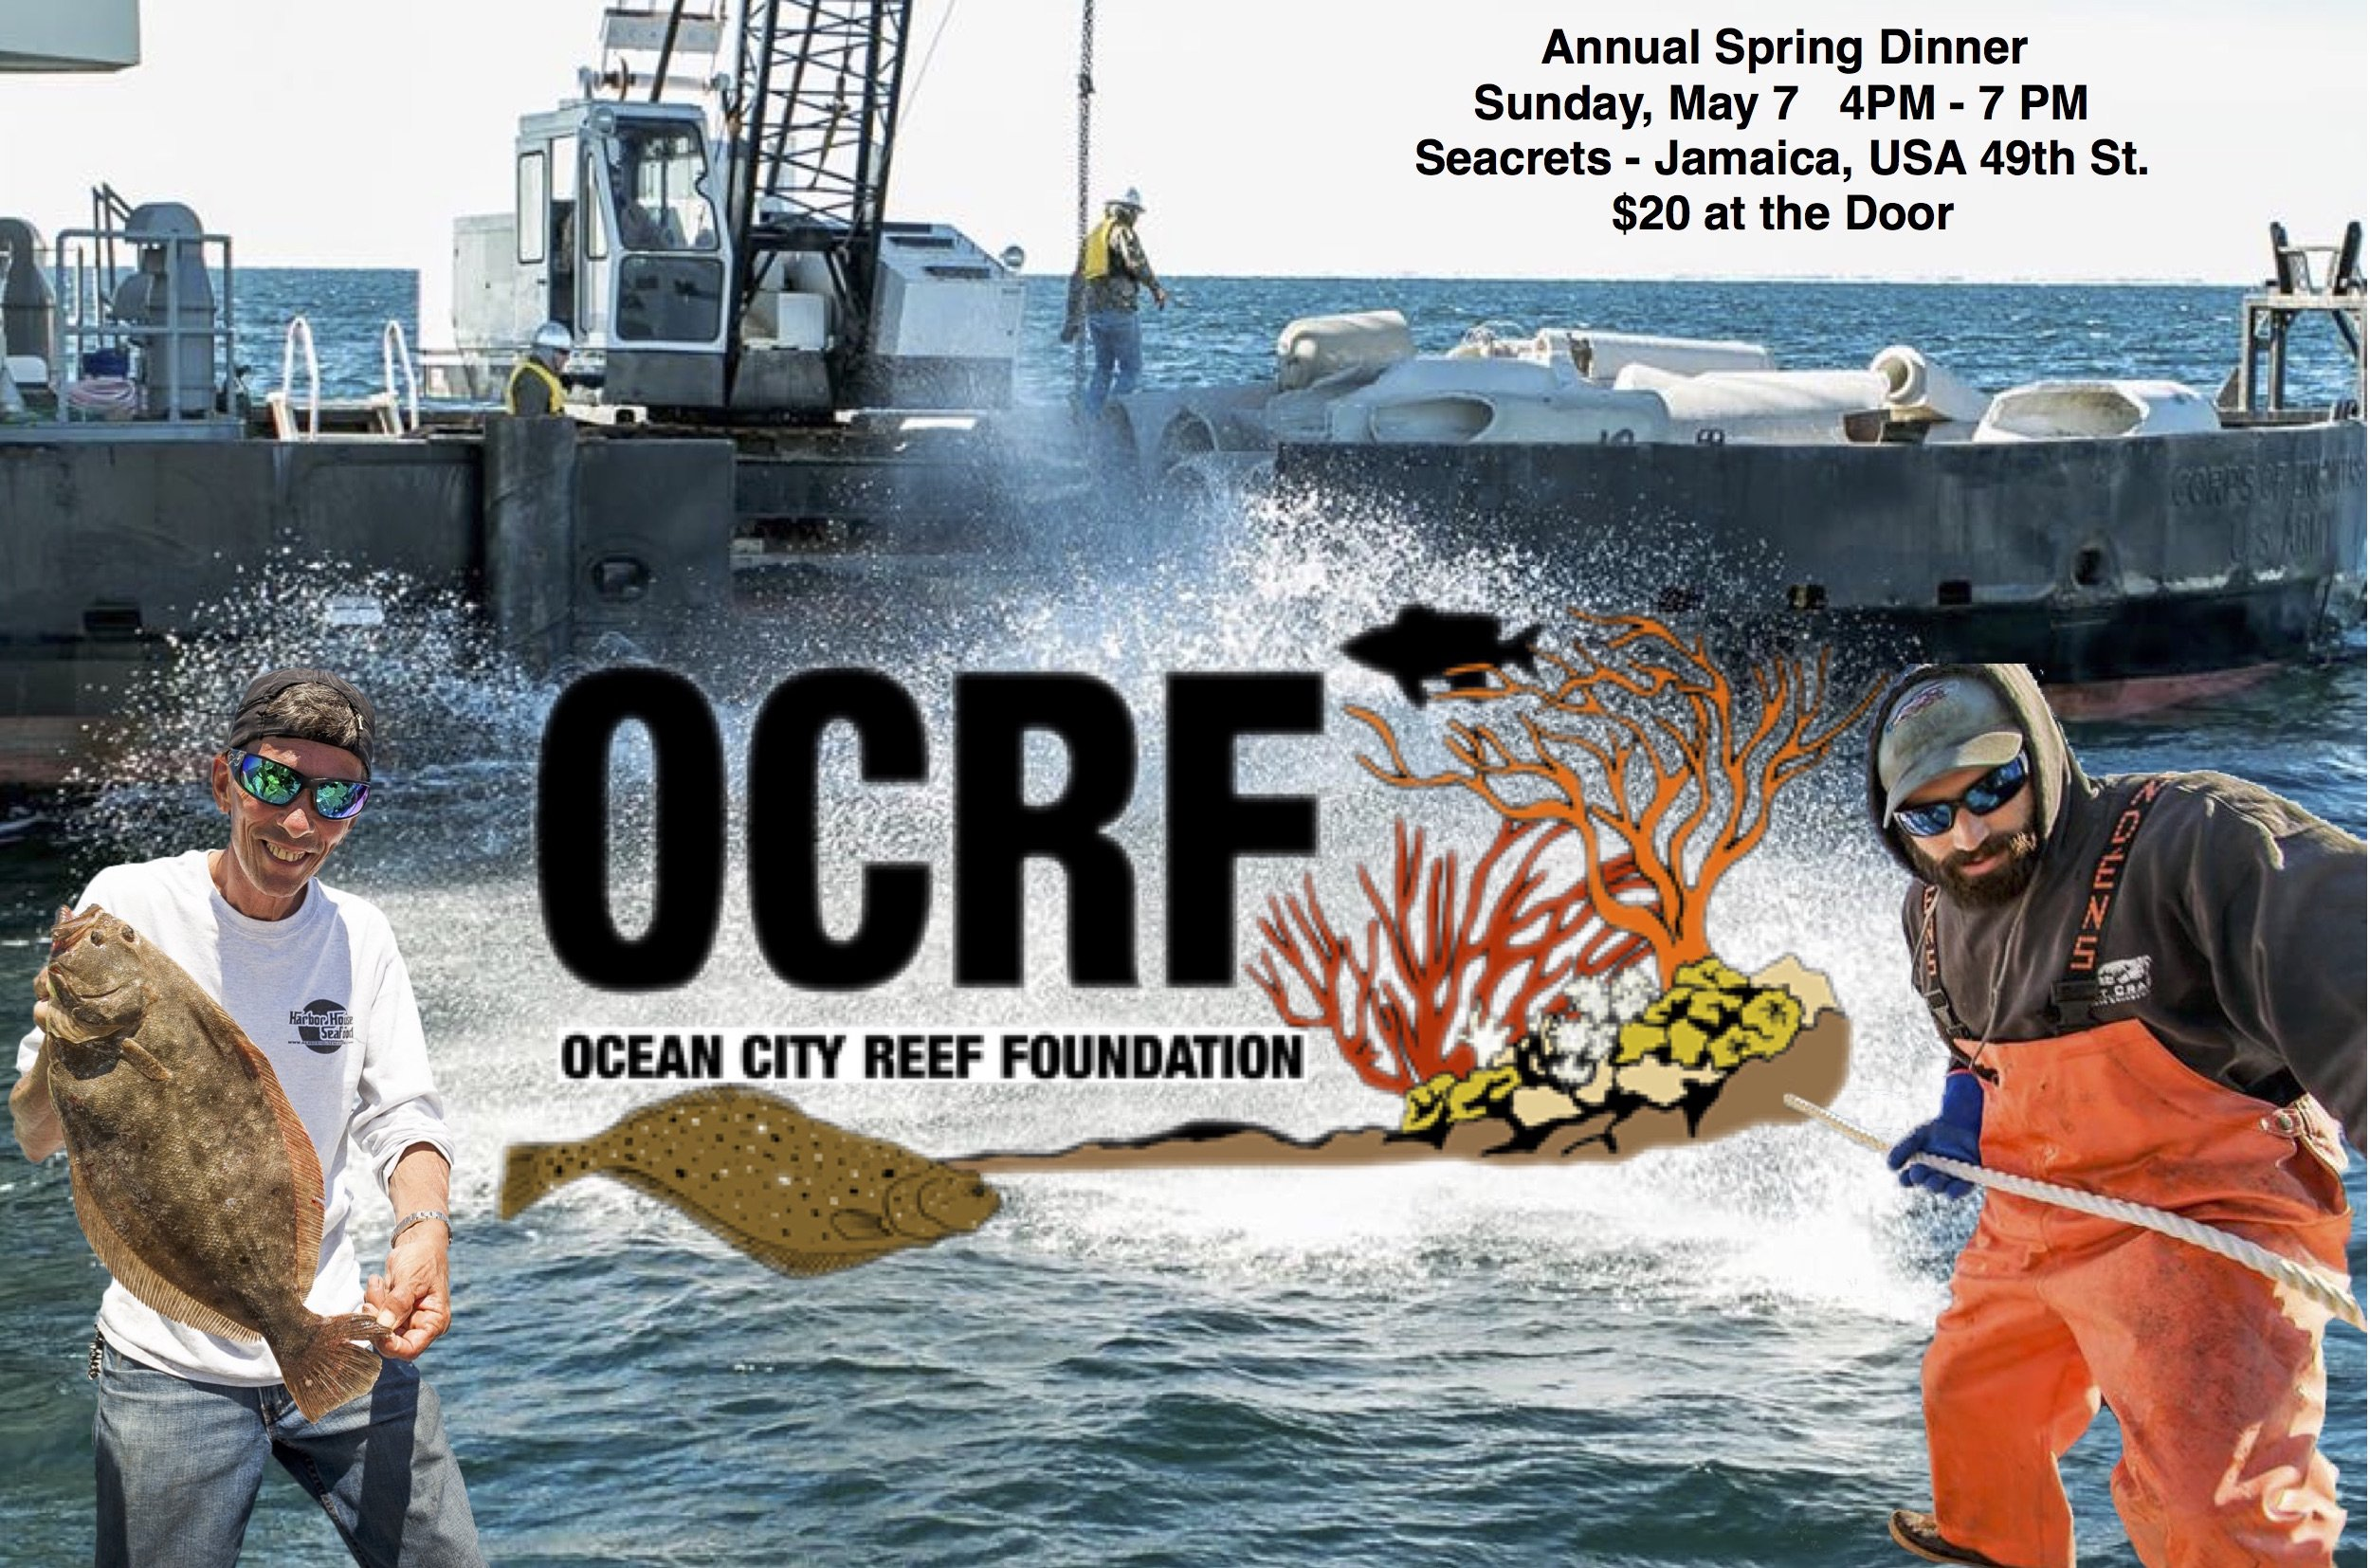 Ocean City Reef Foundation Annual Spring Dinner